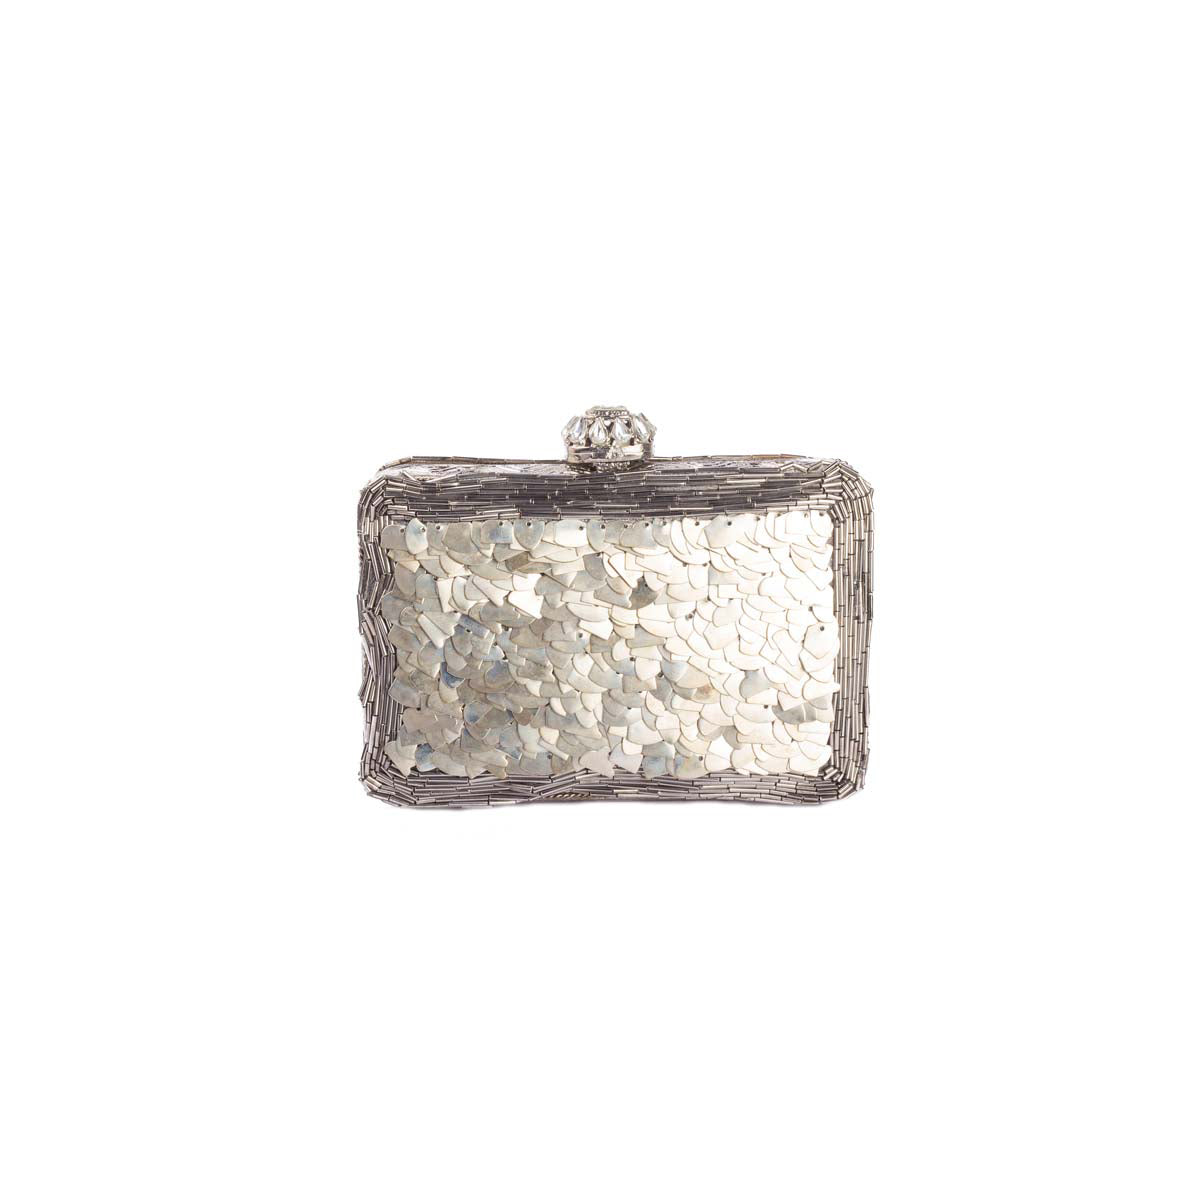 Silver Metal Clutch With Pink Moon Rock